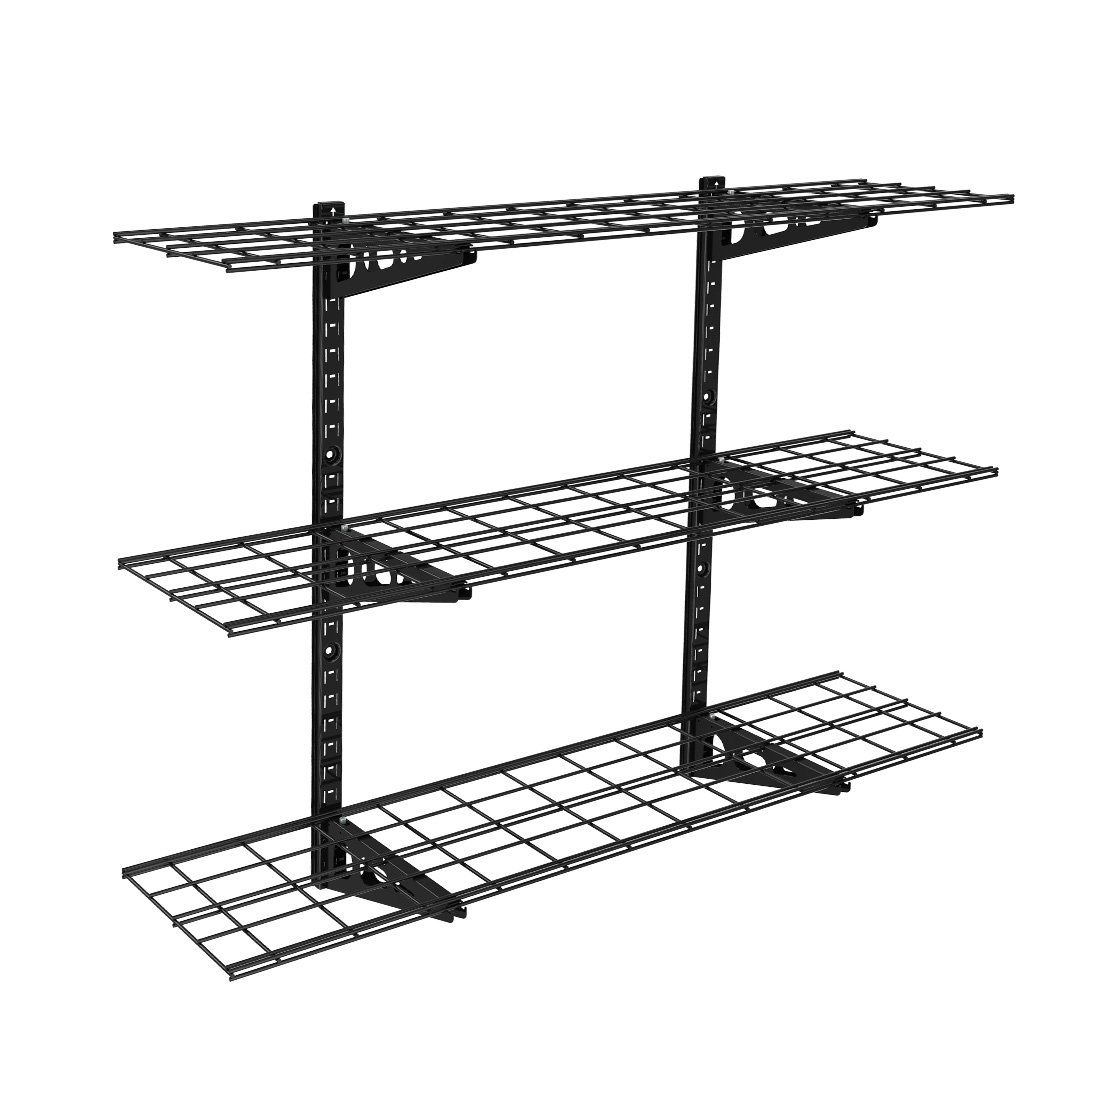 Fleximounts 3-Tier Storage Wall Shelves 1x4ft 12-inch-by-48-inch per shelf Height adjustable Floating Shelves (Black) by FLEXIMOUNTS